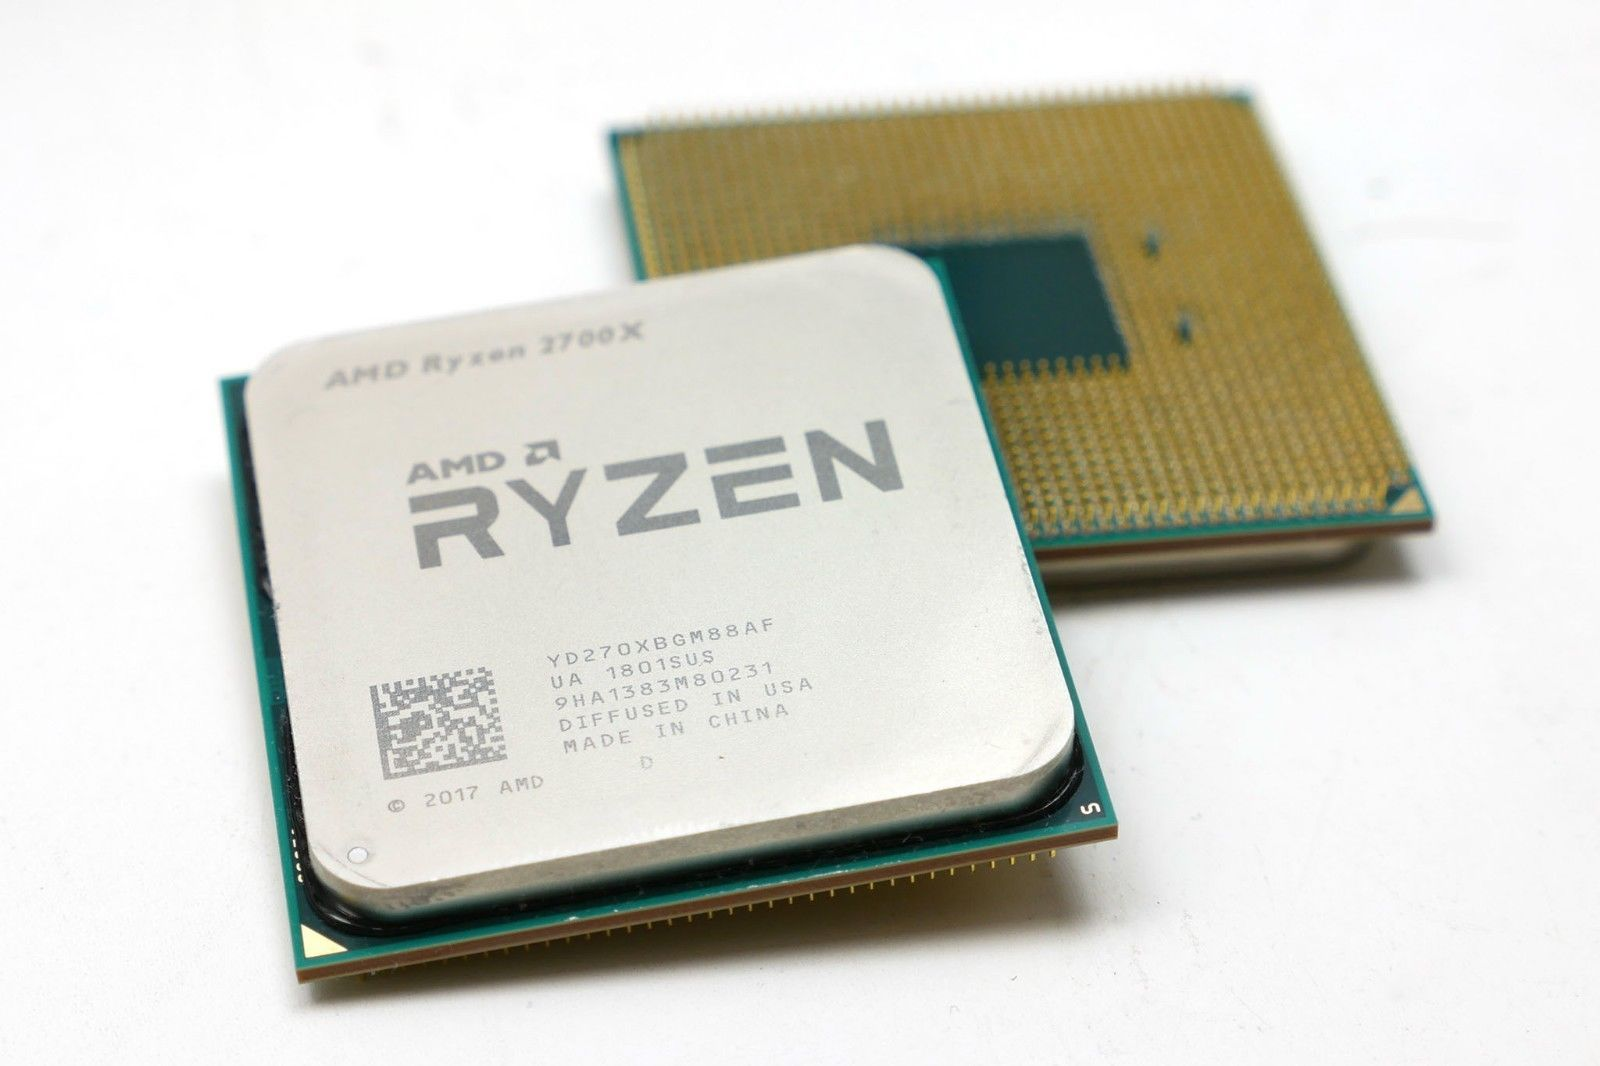 Cpus Processors 164 Amd Ryzen 7 2700x Buy It Now Only 289 On Ebay Processors Ryzen Amd Cpu Socket Ebay